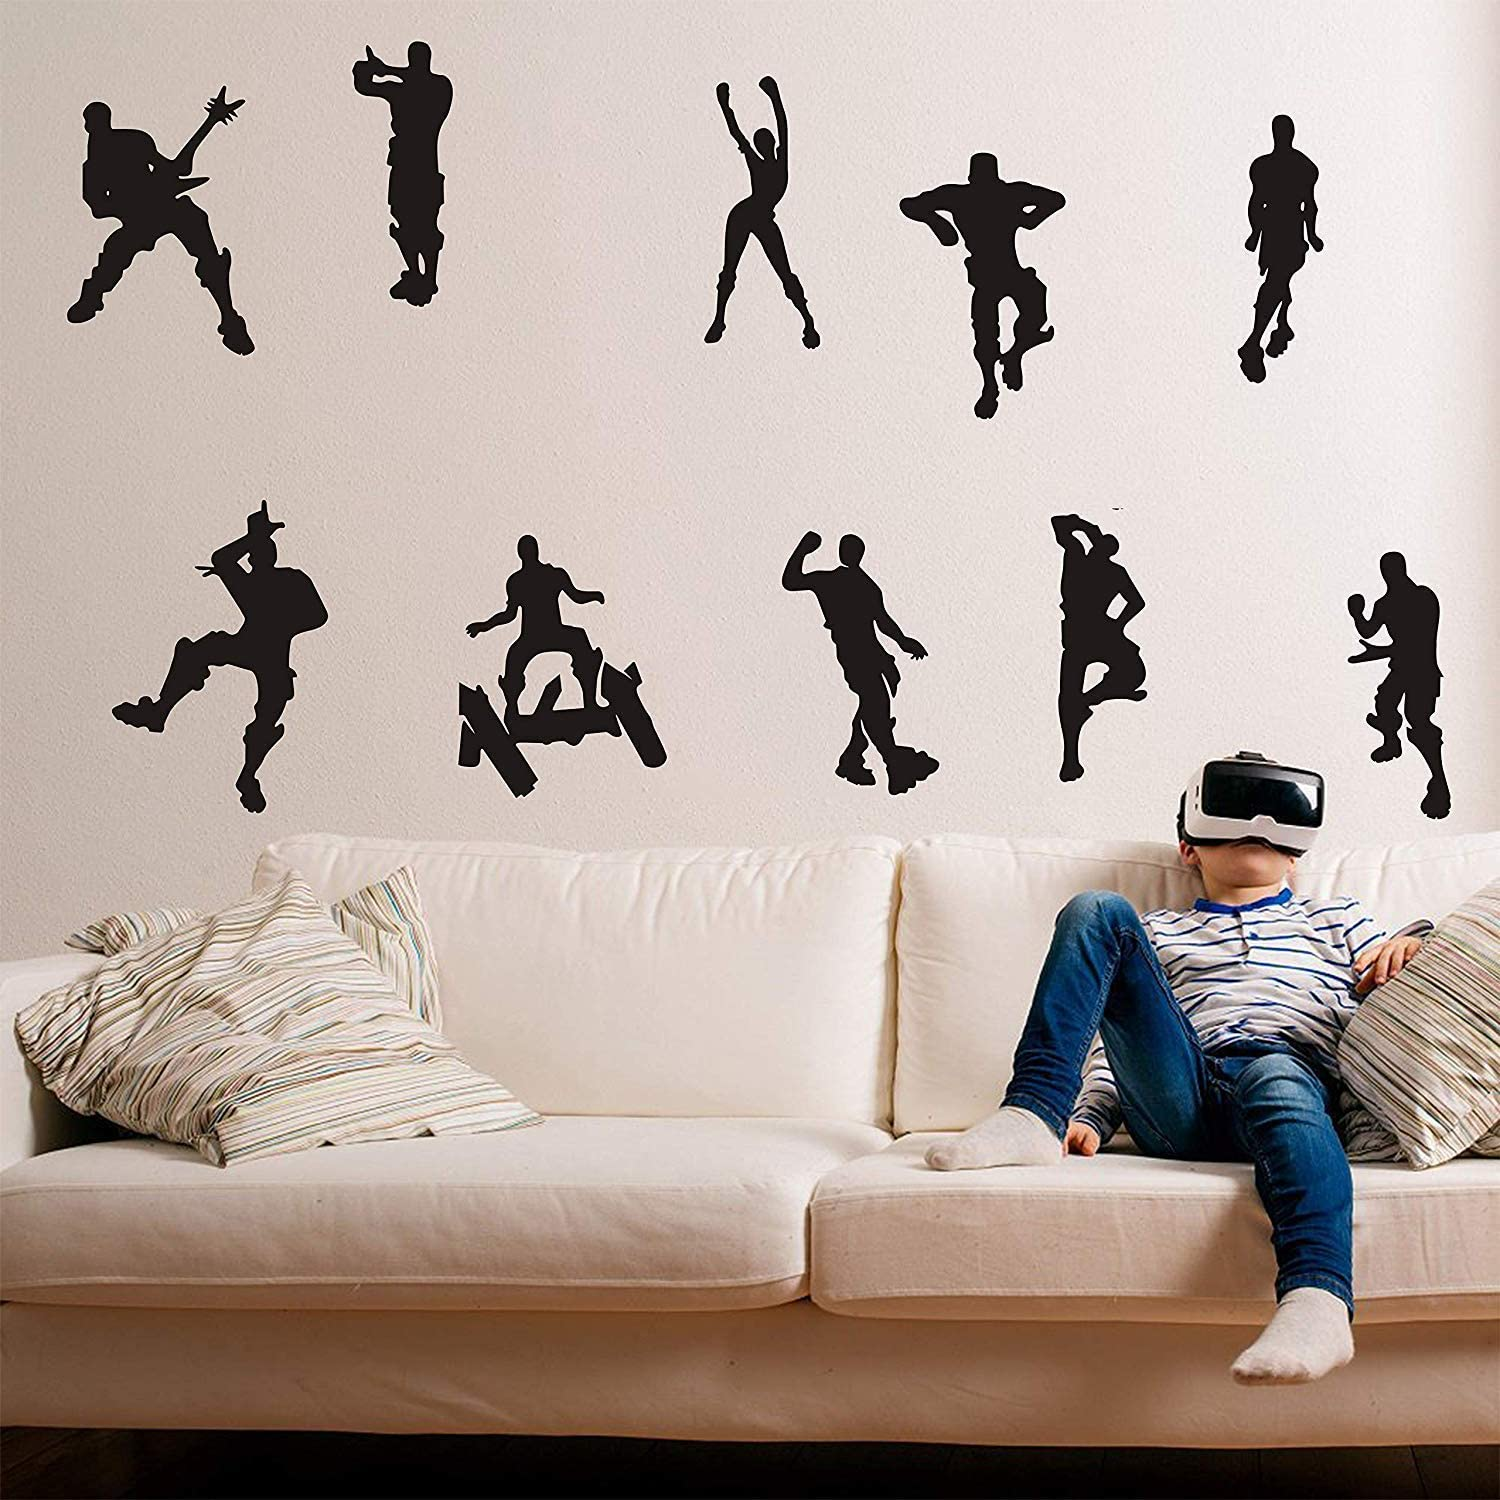 ALiQing Game Wall Decal Poster Music Skating Dancing Wall Stickers for Children Teenager Bedroom Playroom Wall Decoration (Black)